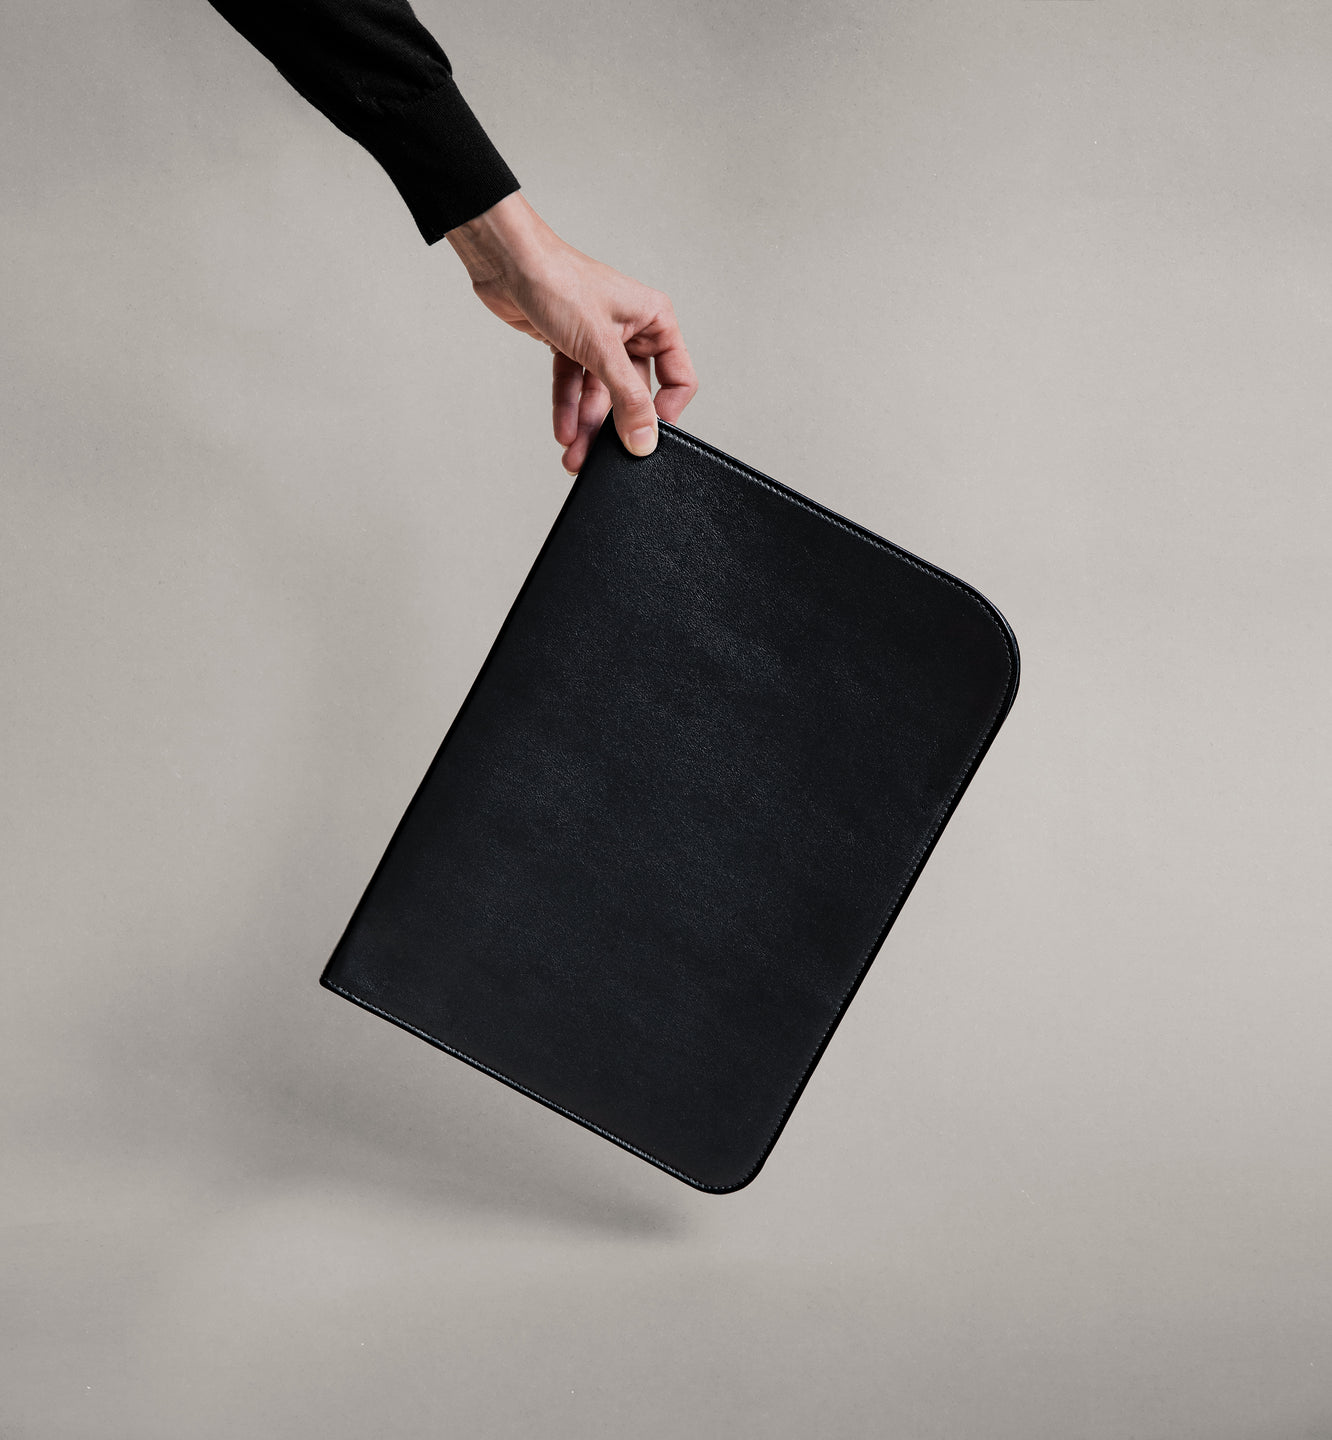 The Leather Folio in Black - The Leather Folio in Black